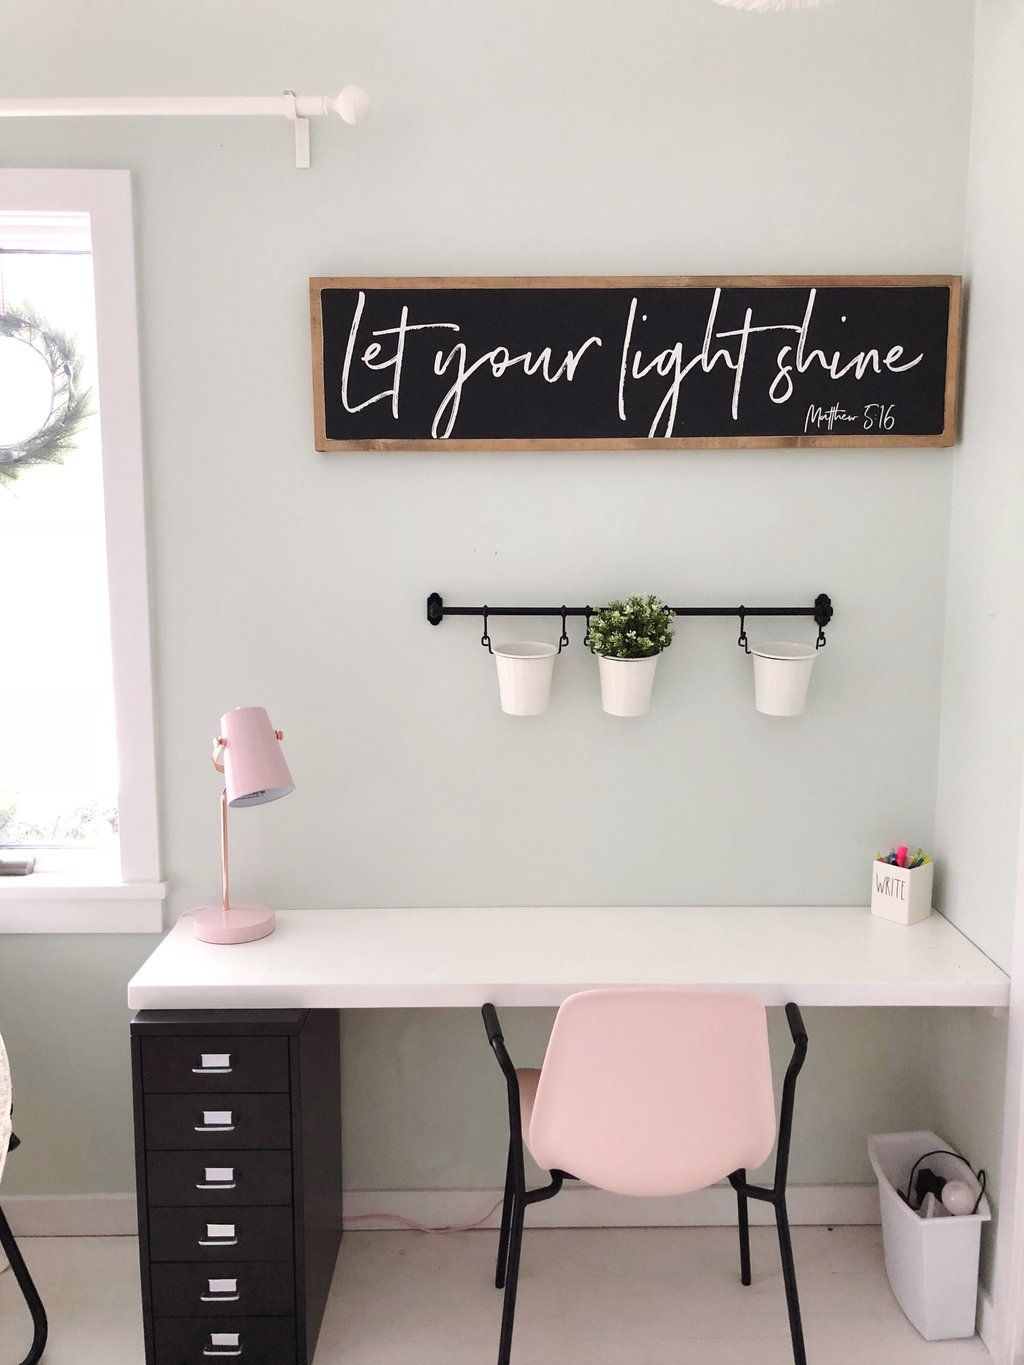 Let your light shine | 4'x1' Wood Sign images